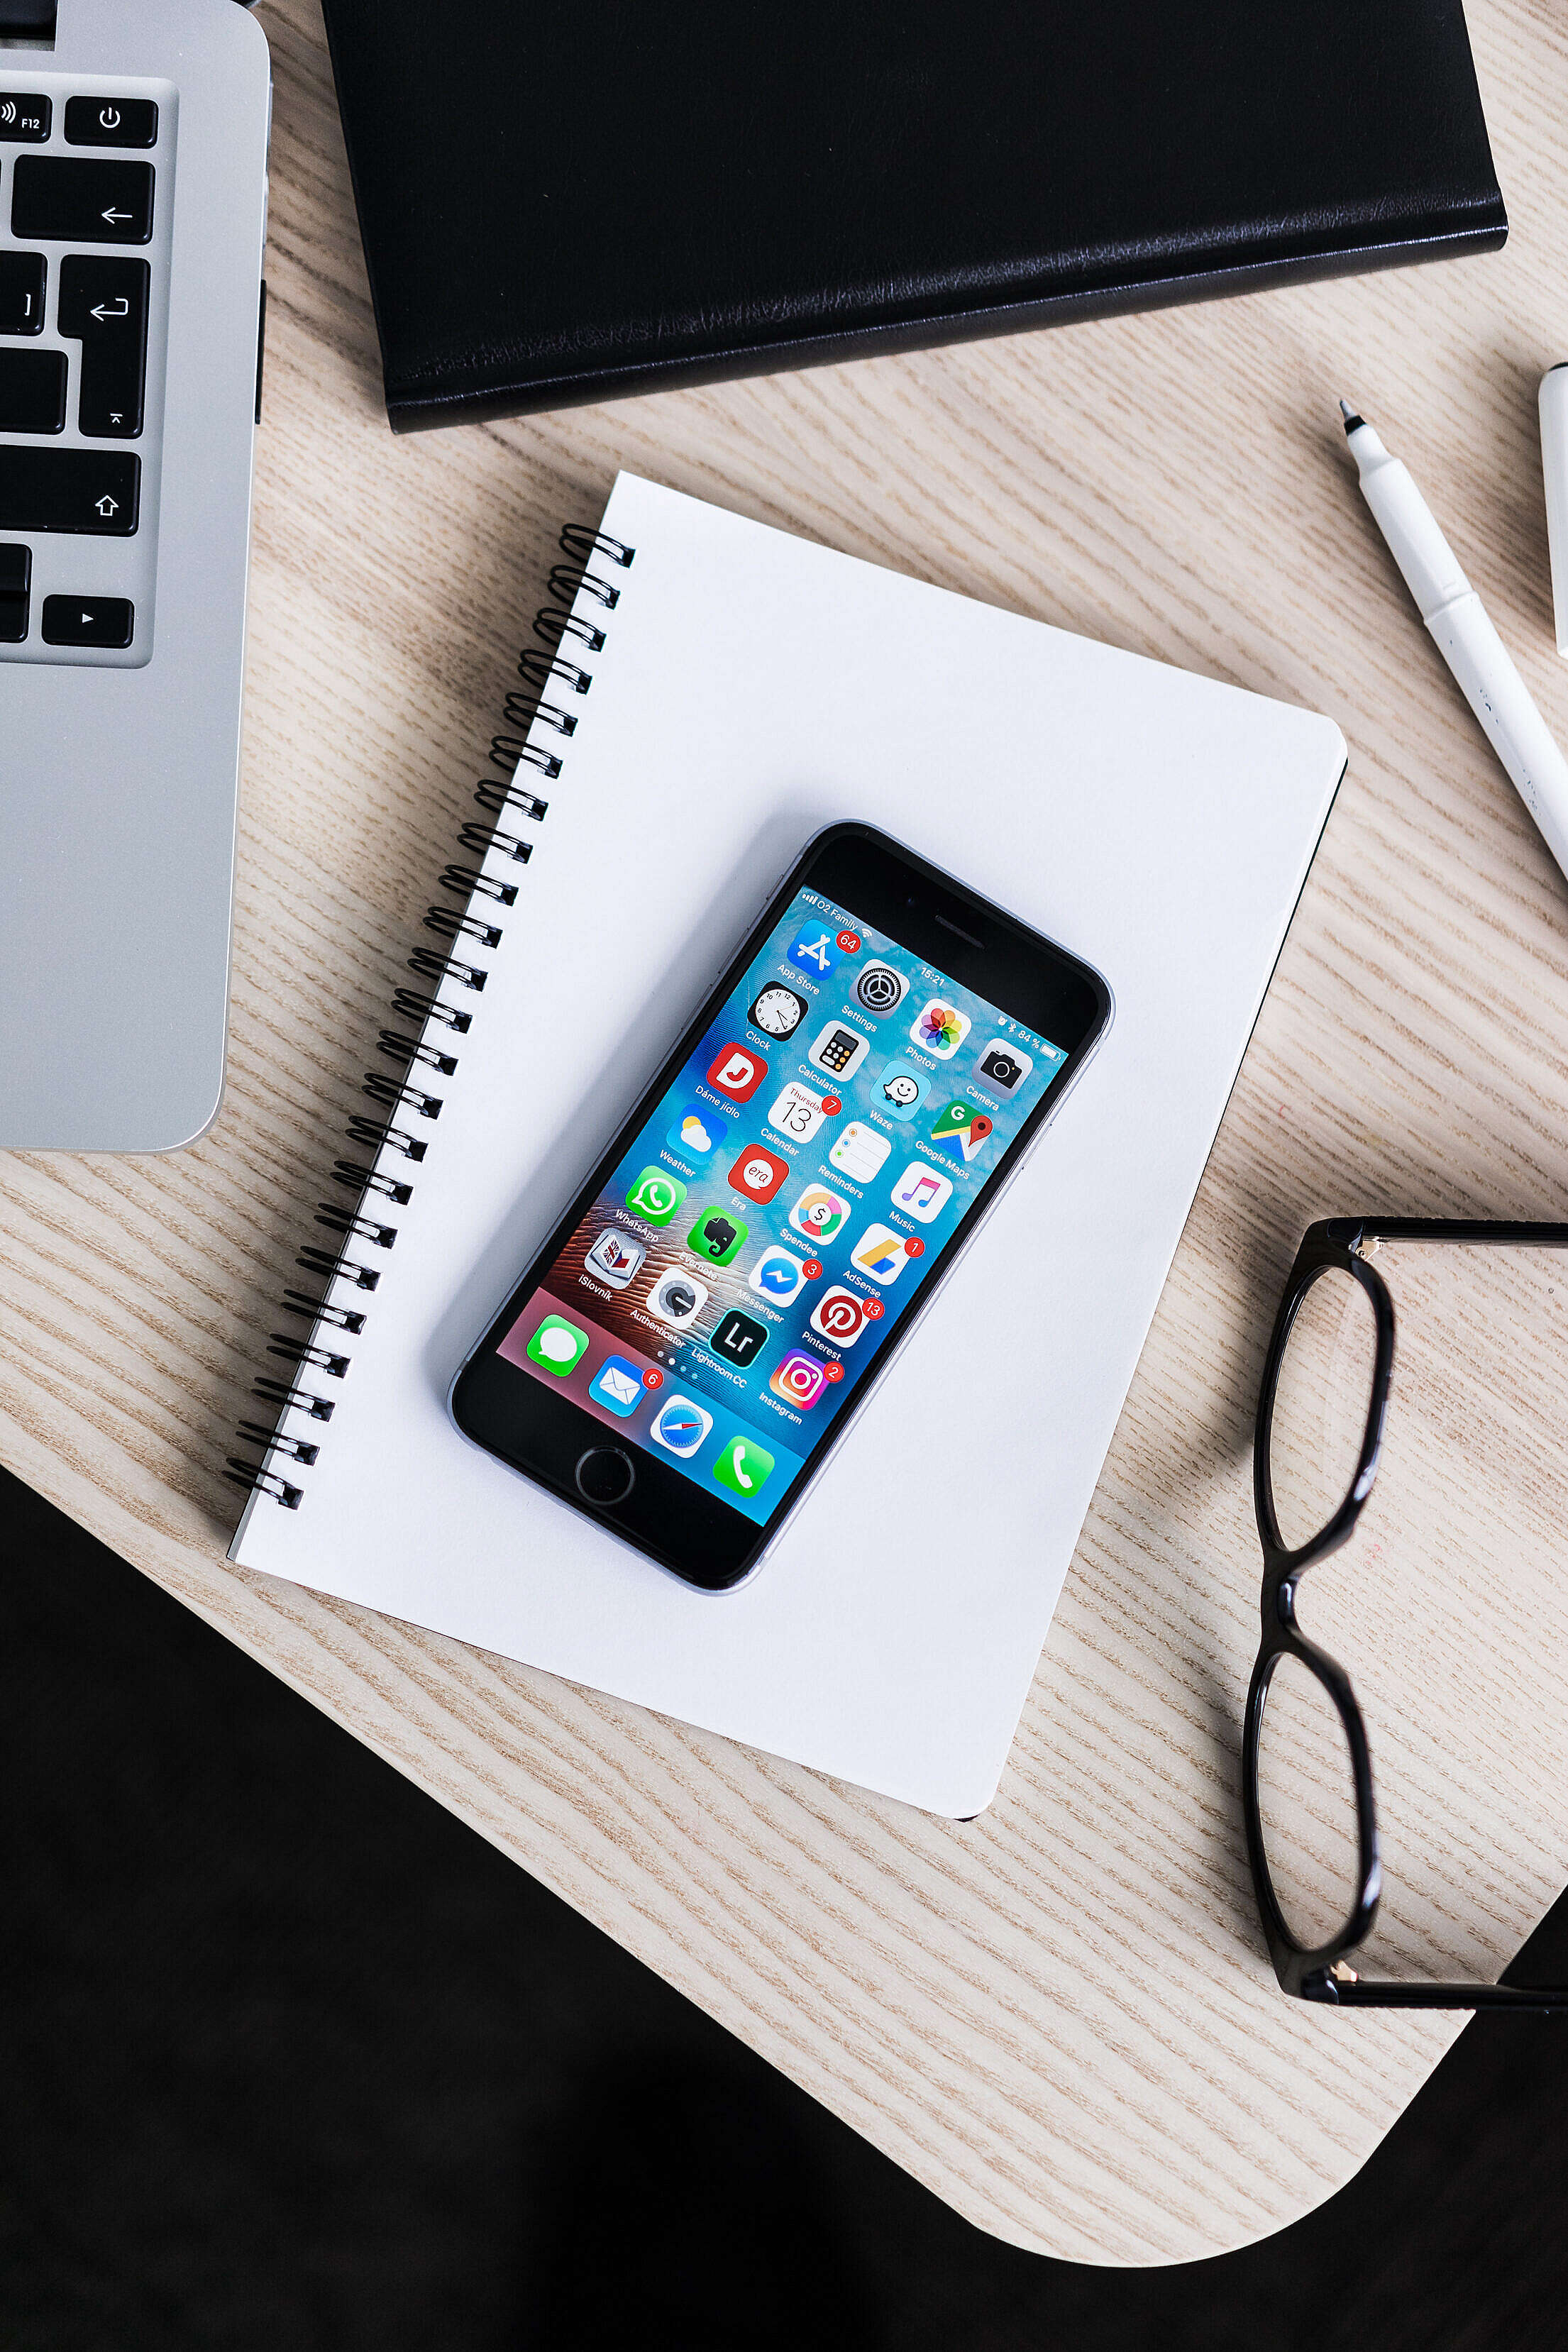 iPhone Lying on Notebook and Wooden Desk Mockup Free Stock Photo